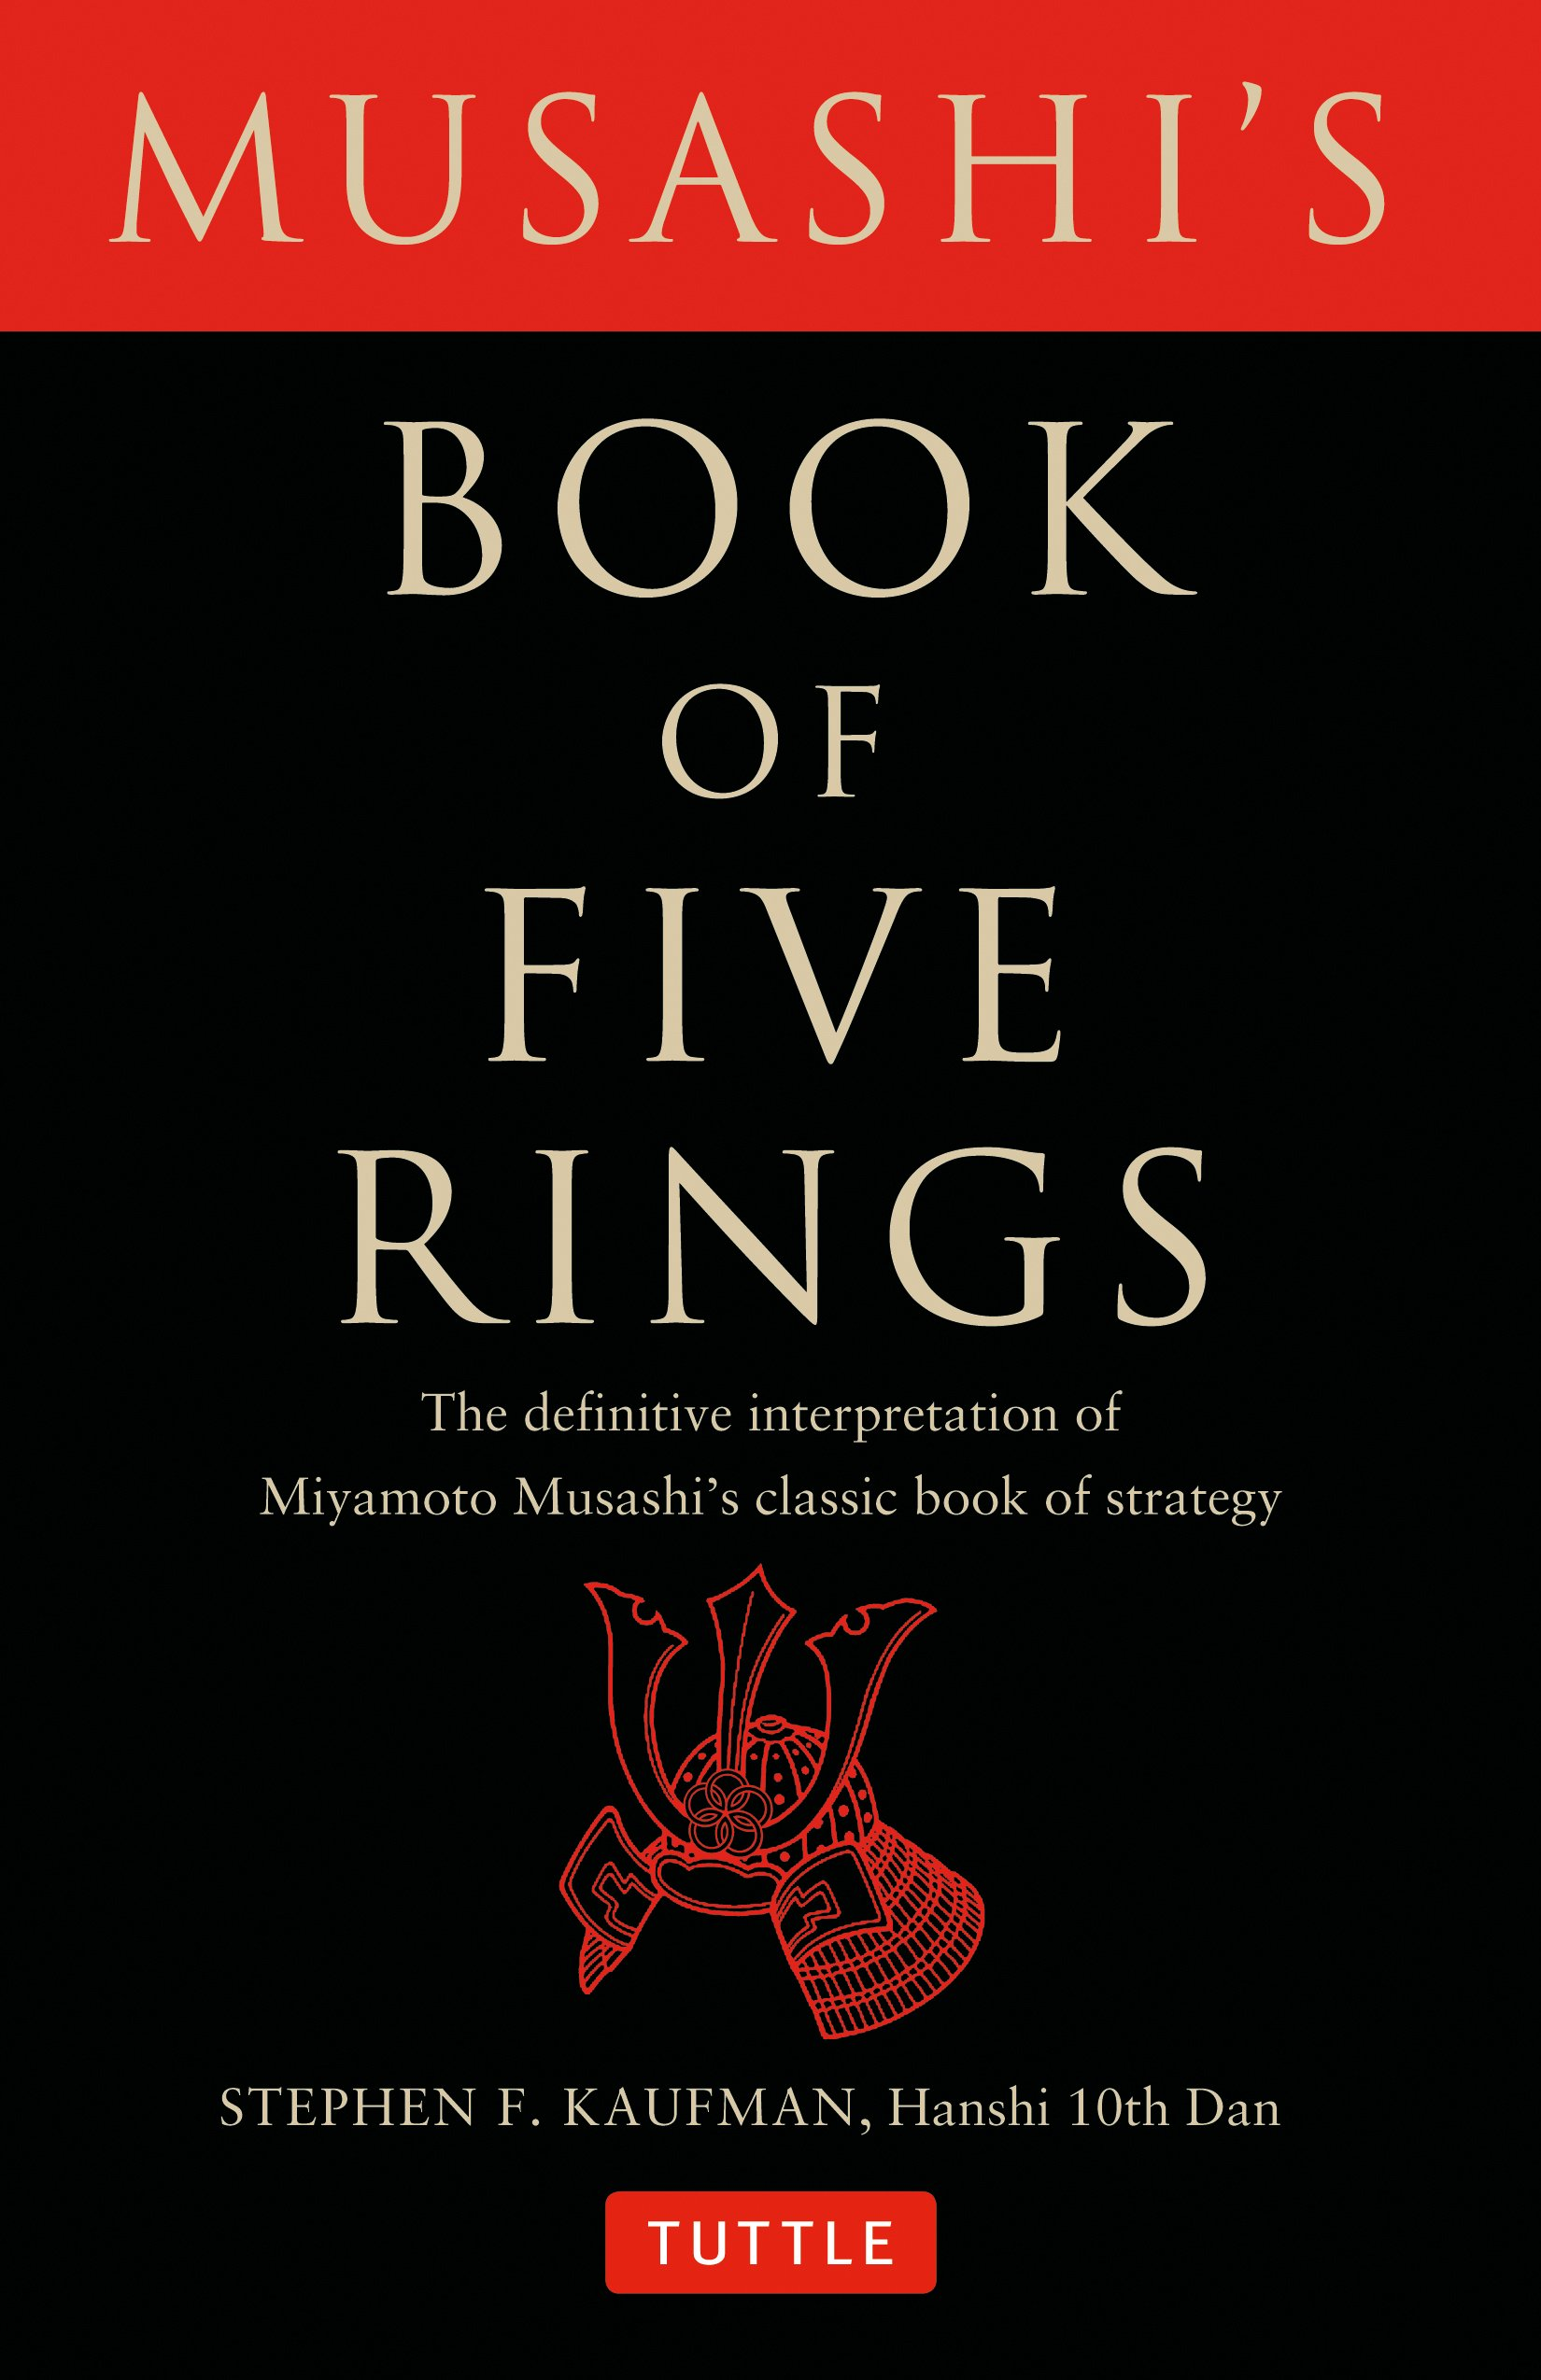 Musashis book of five rings the definitive interpretation of musashis book of five rings the definitive interpretation of miyamoto musashis classic book of strategy miyamoto musashi stephen f kaufman fandeluxe Gallery